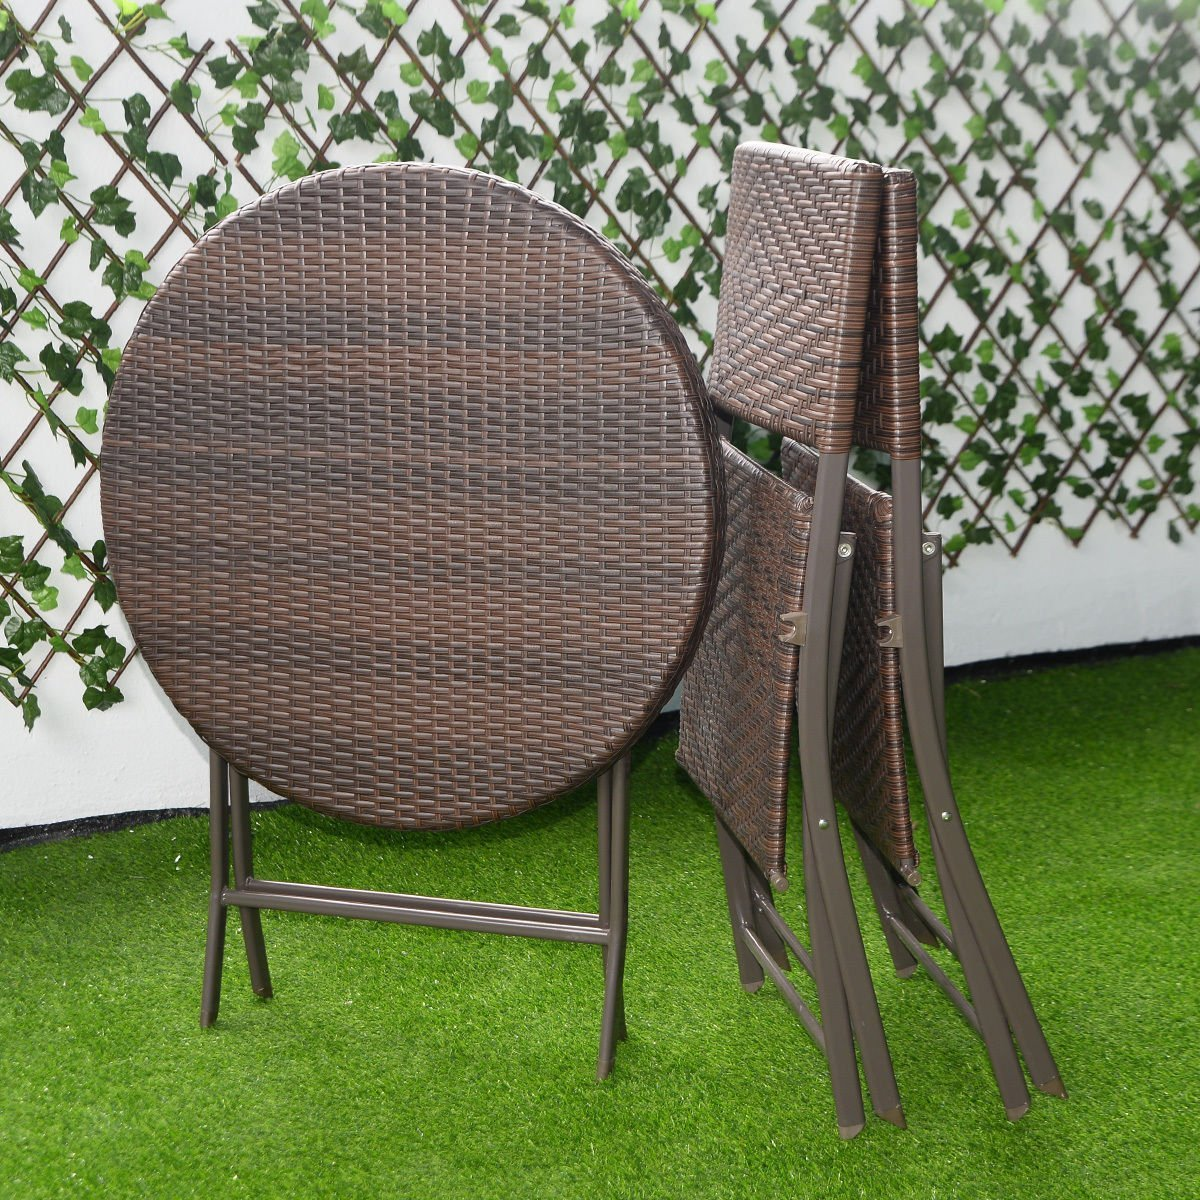 Round Wicker Coffee Table With Stools: Giantex 3PC Folding Round Table Chair Bistro Set Rattan